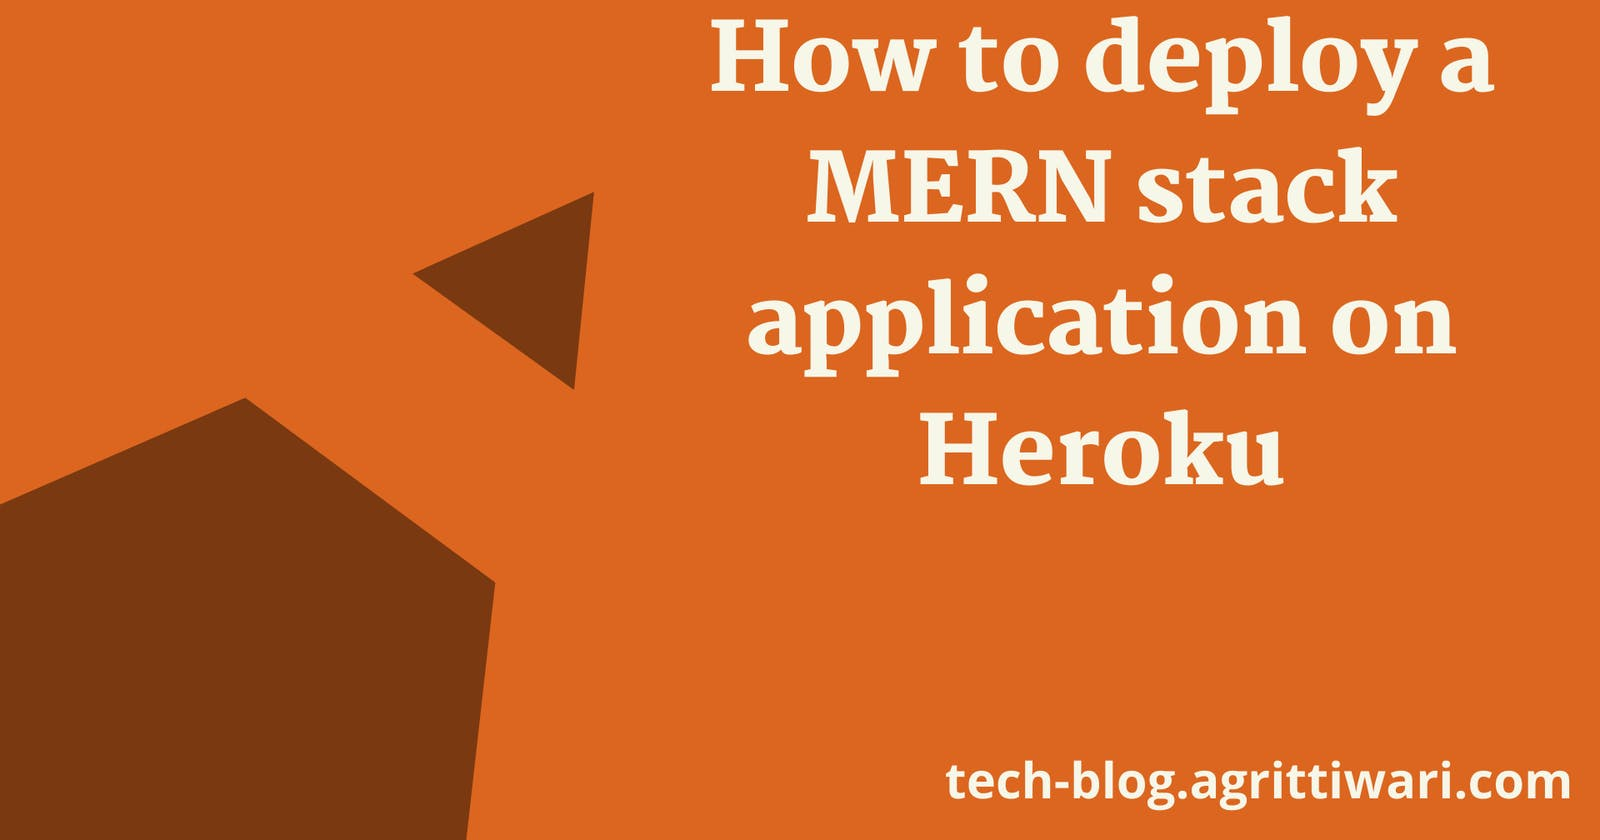 How to deploy a MERN stack application on Heroku